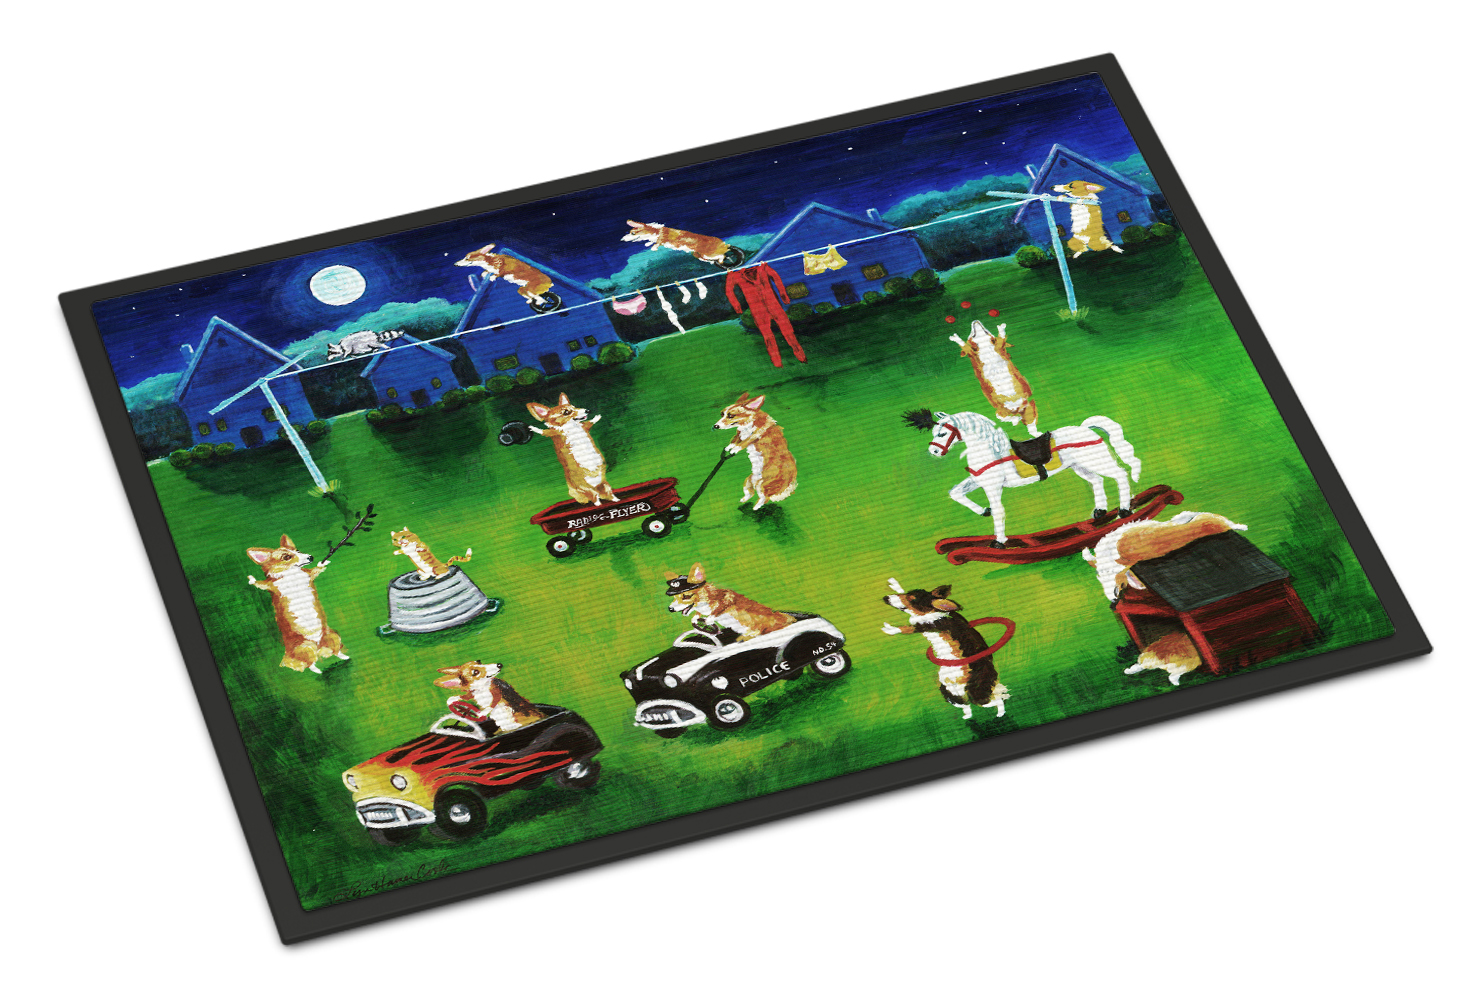 Corgi Backyard Circus Doormat by Caroline's Treasures